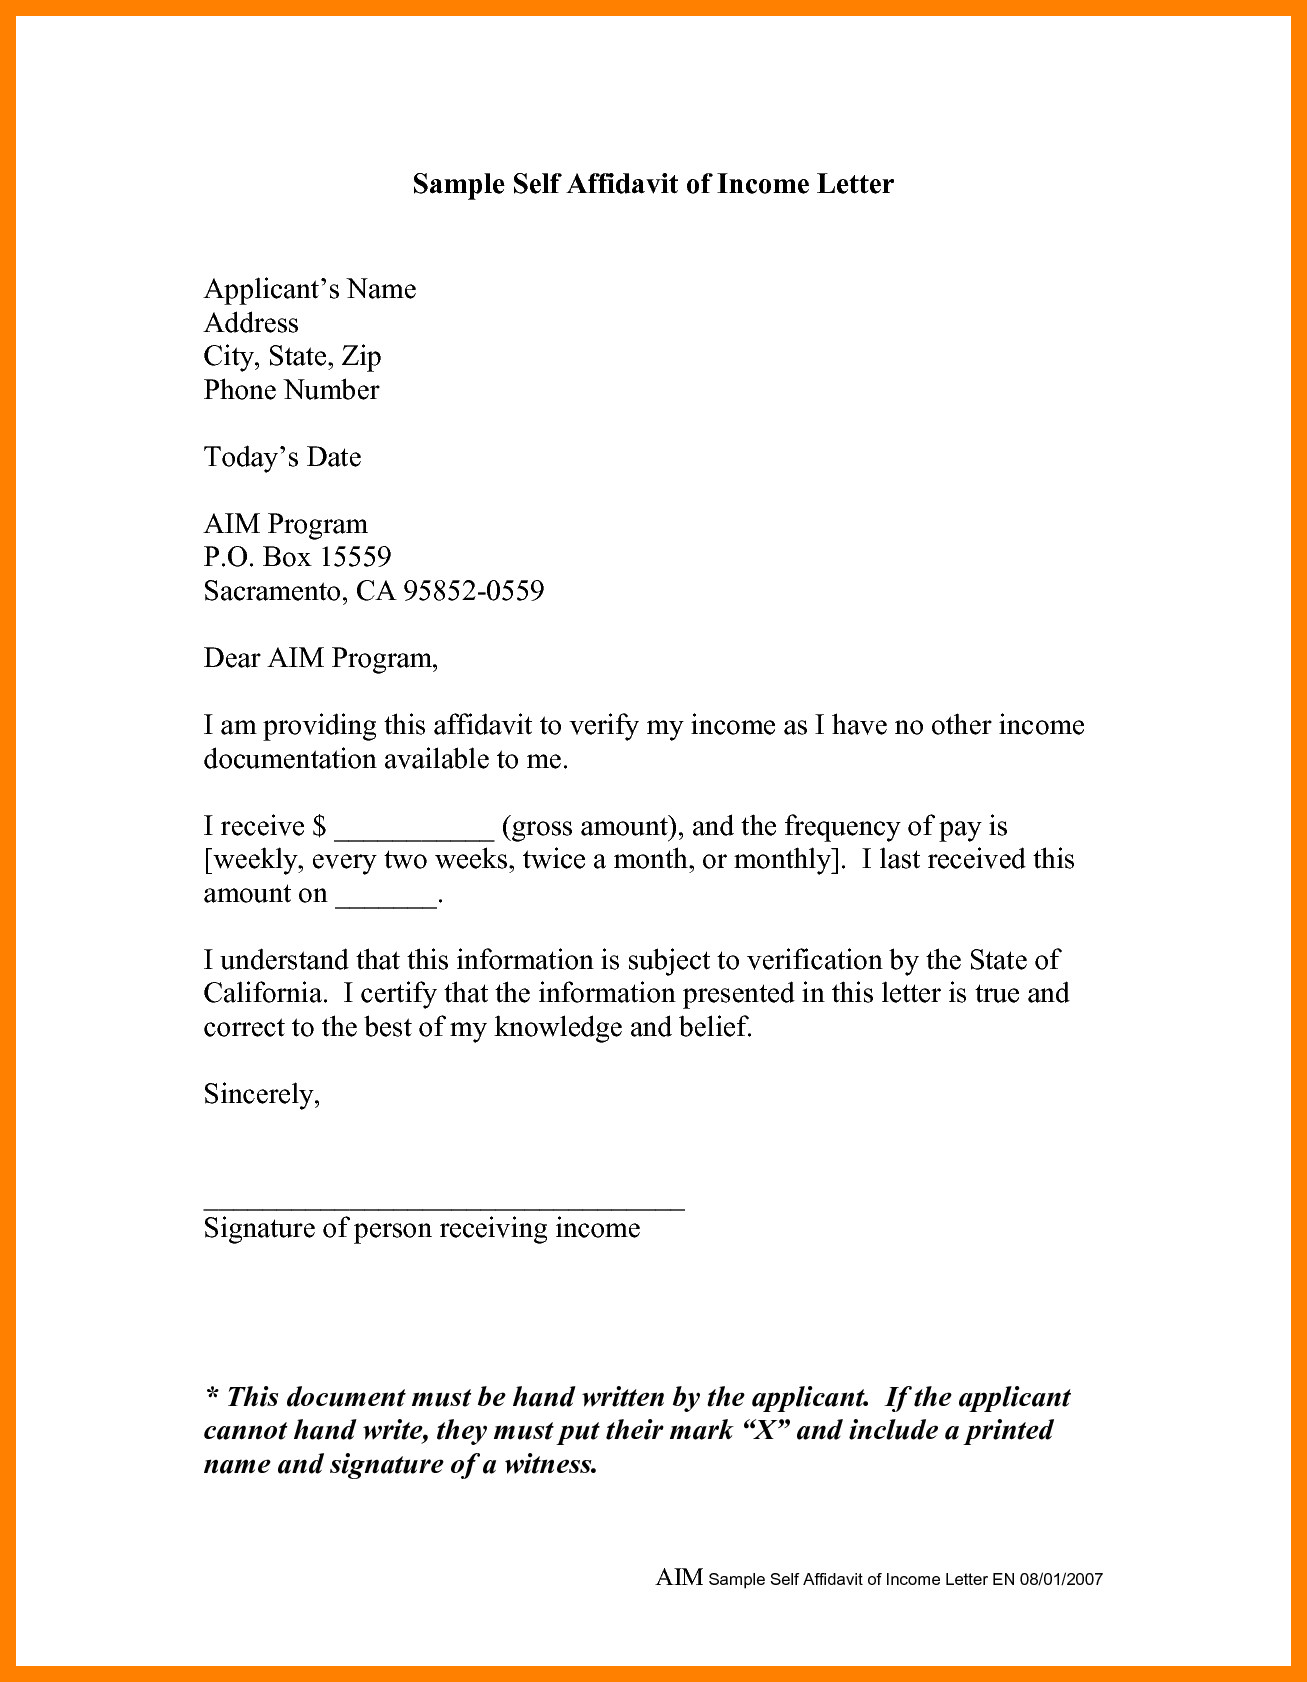 Sample Affidavit Free Sworn Affidavit Letter, Template, Format